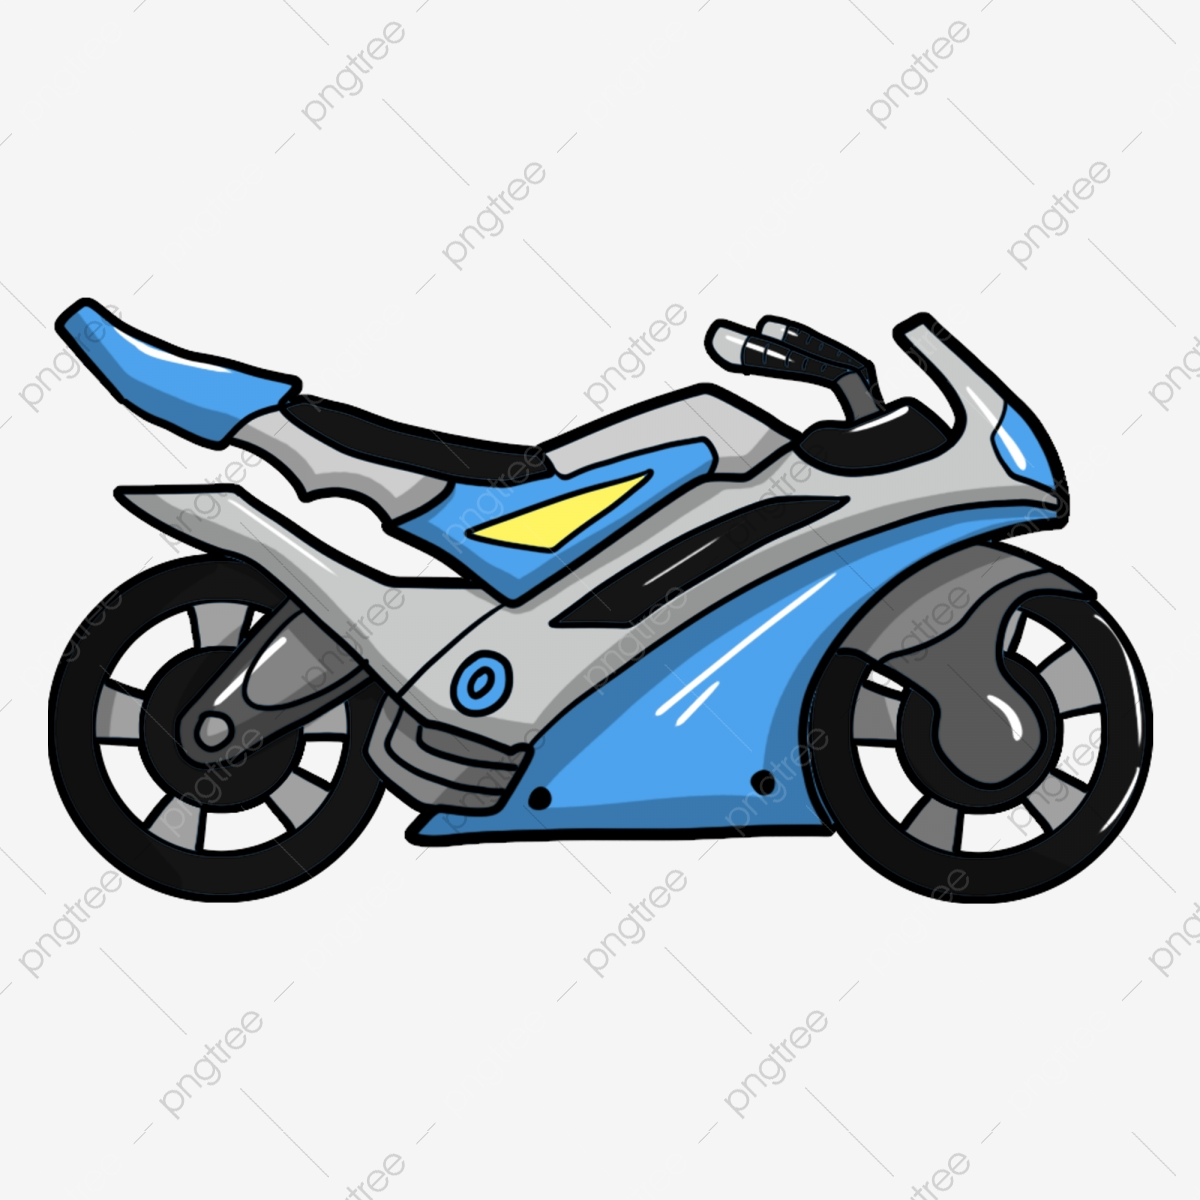 Blue Blue Motorcycle Hand Drawn Motorcycle Motorcycle Illustration.